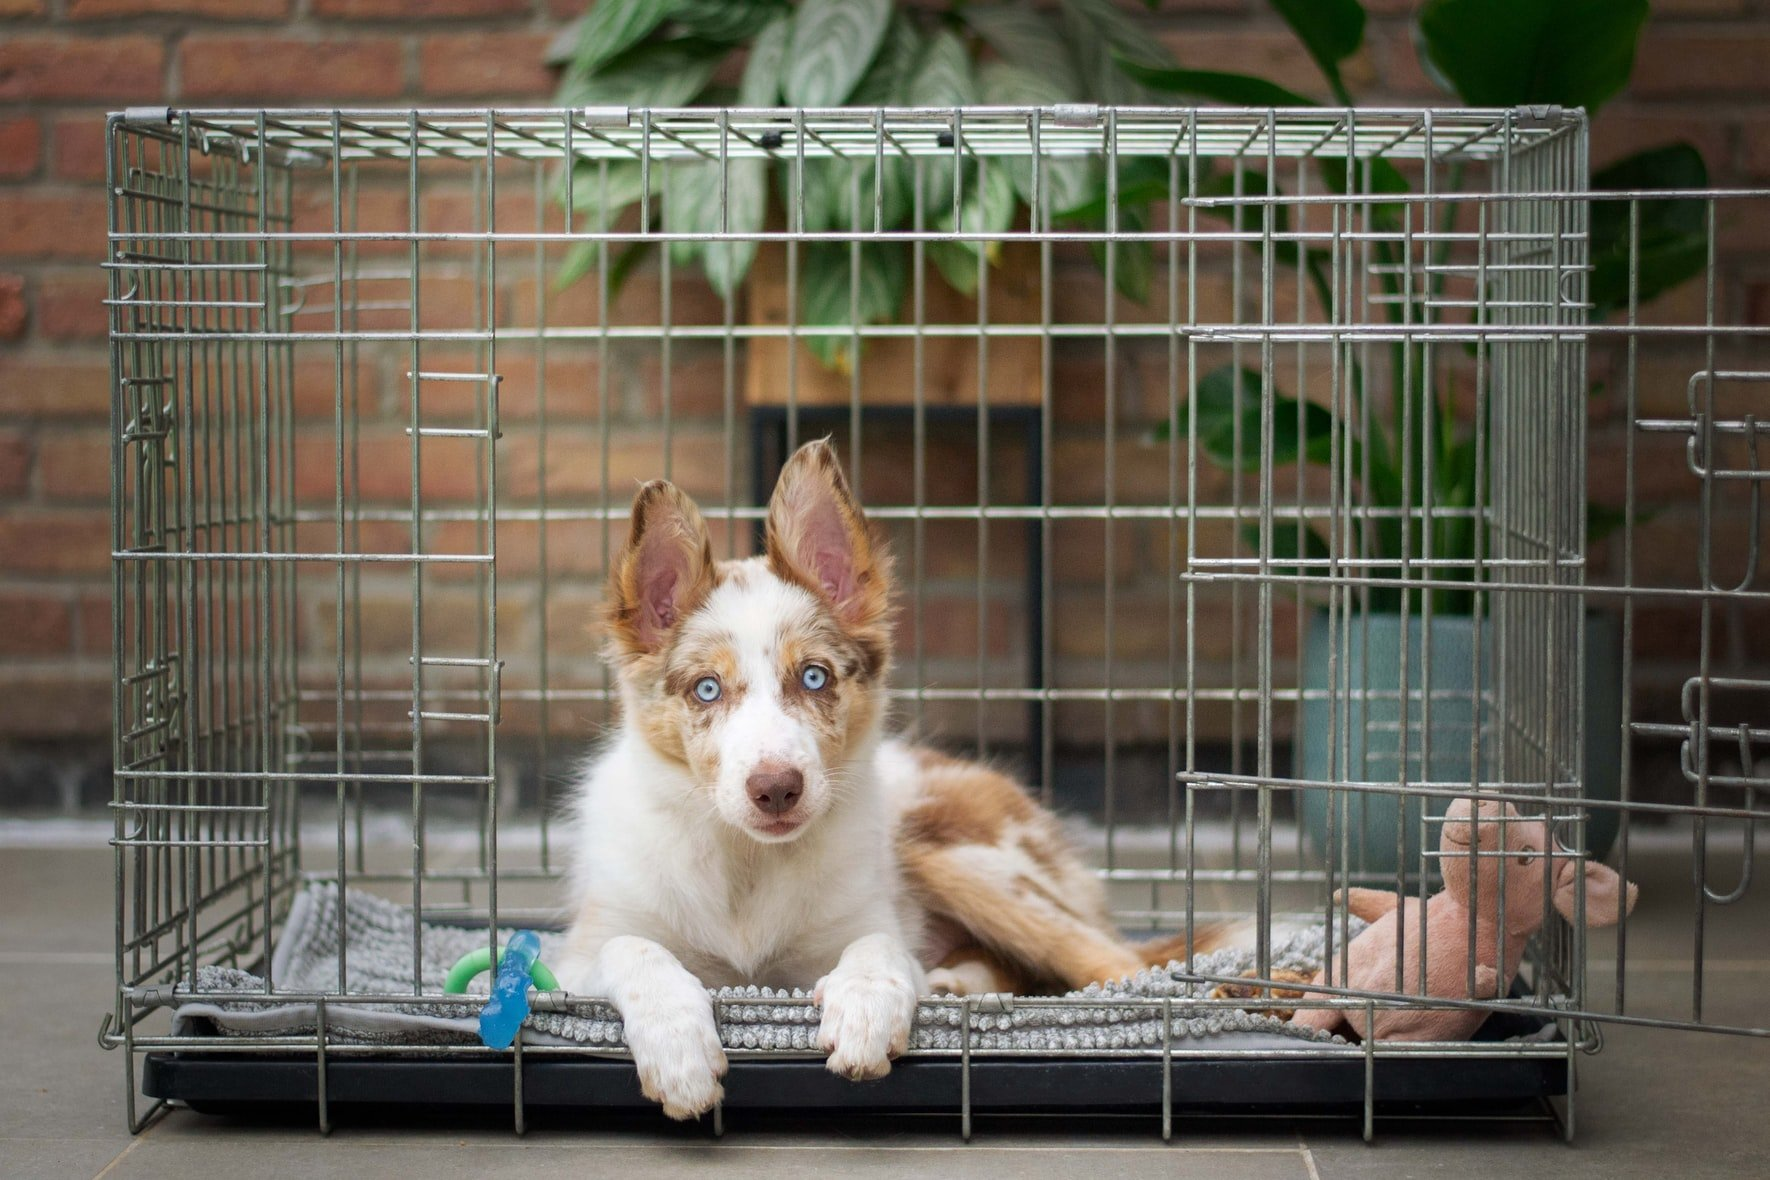 dog whining in crate all of a sudden